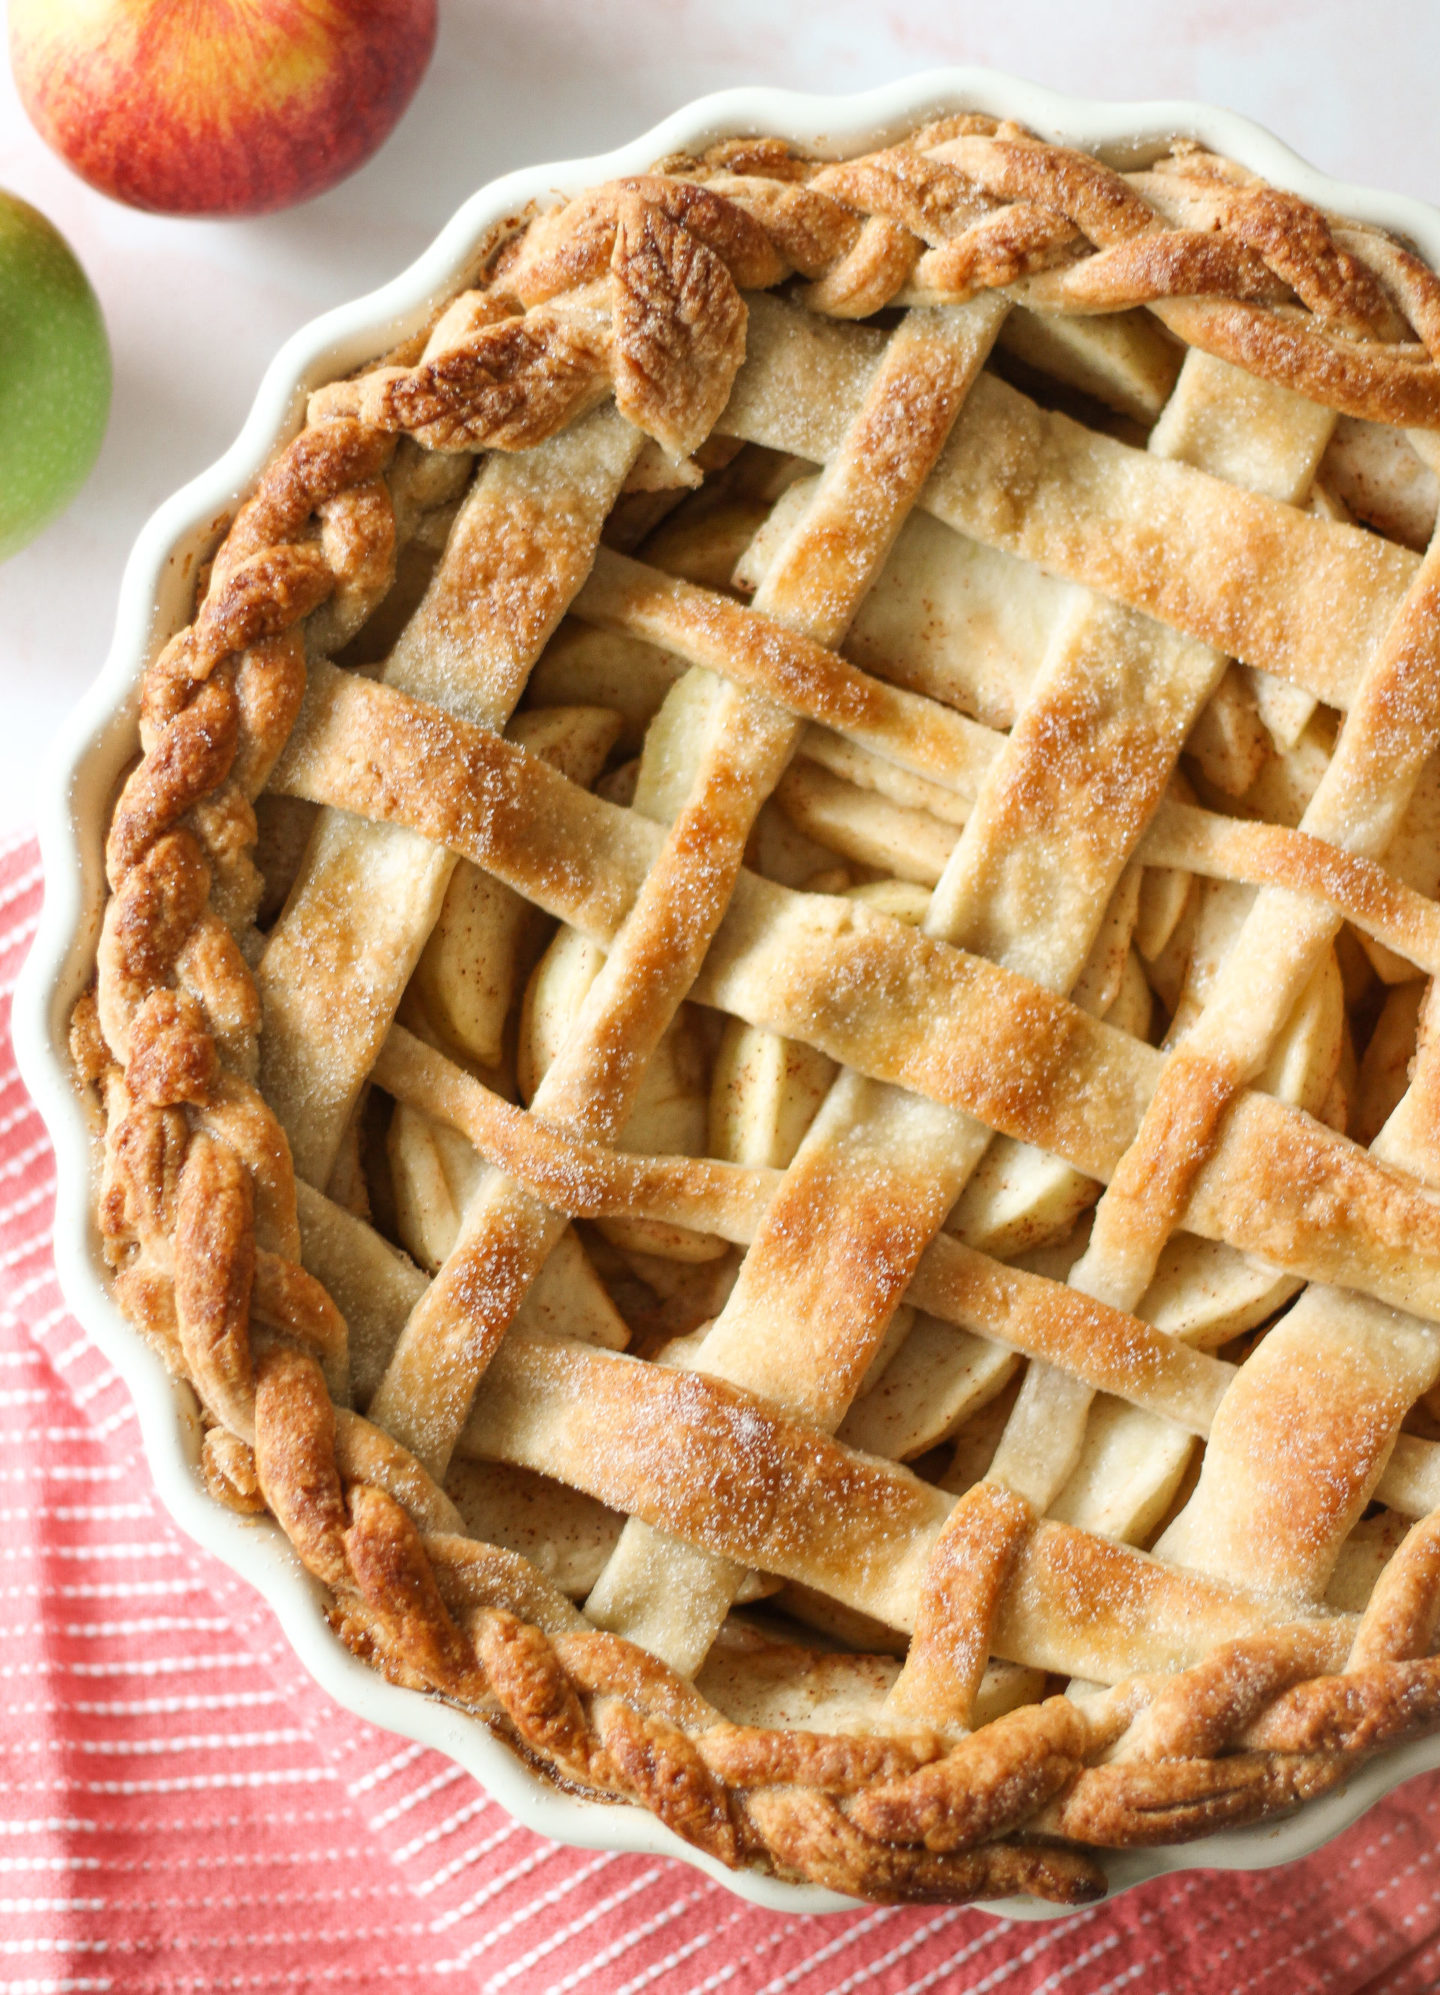 view from above of uncut lattice apple pie